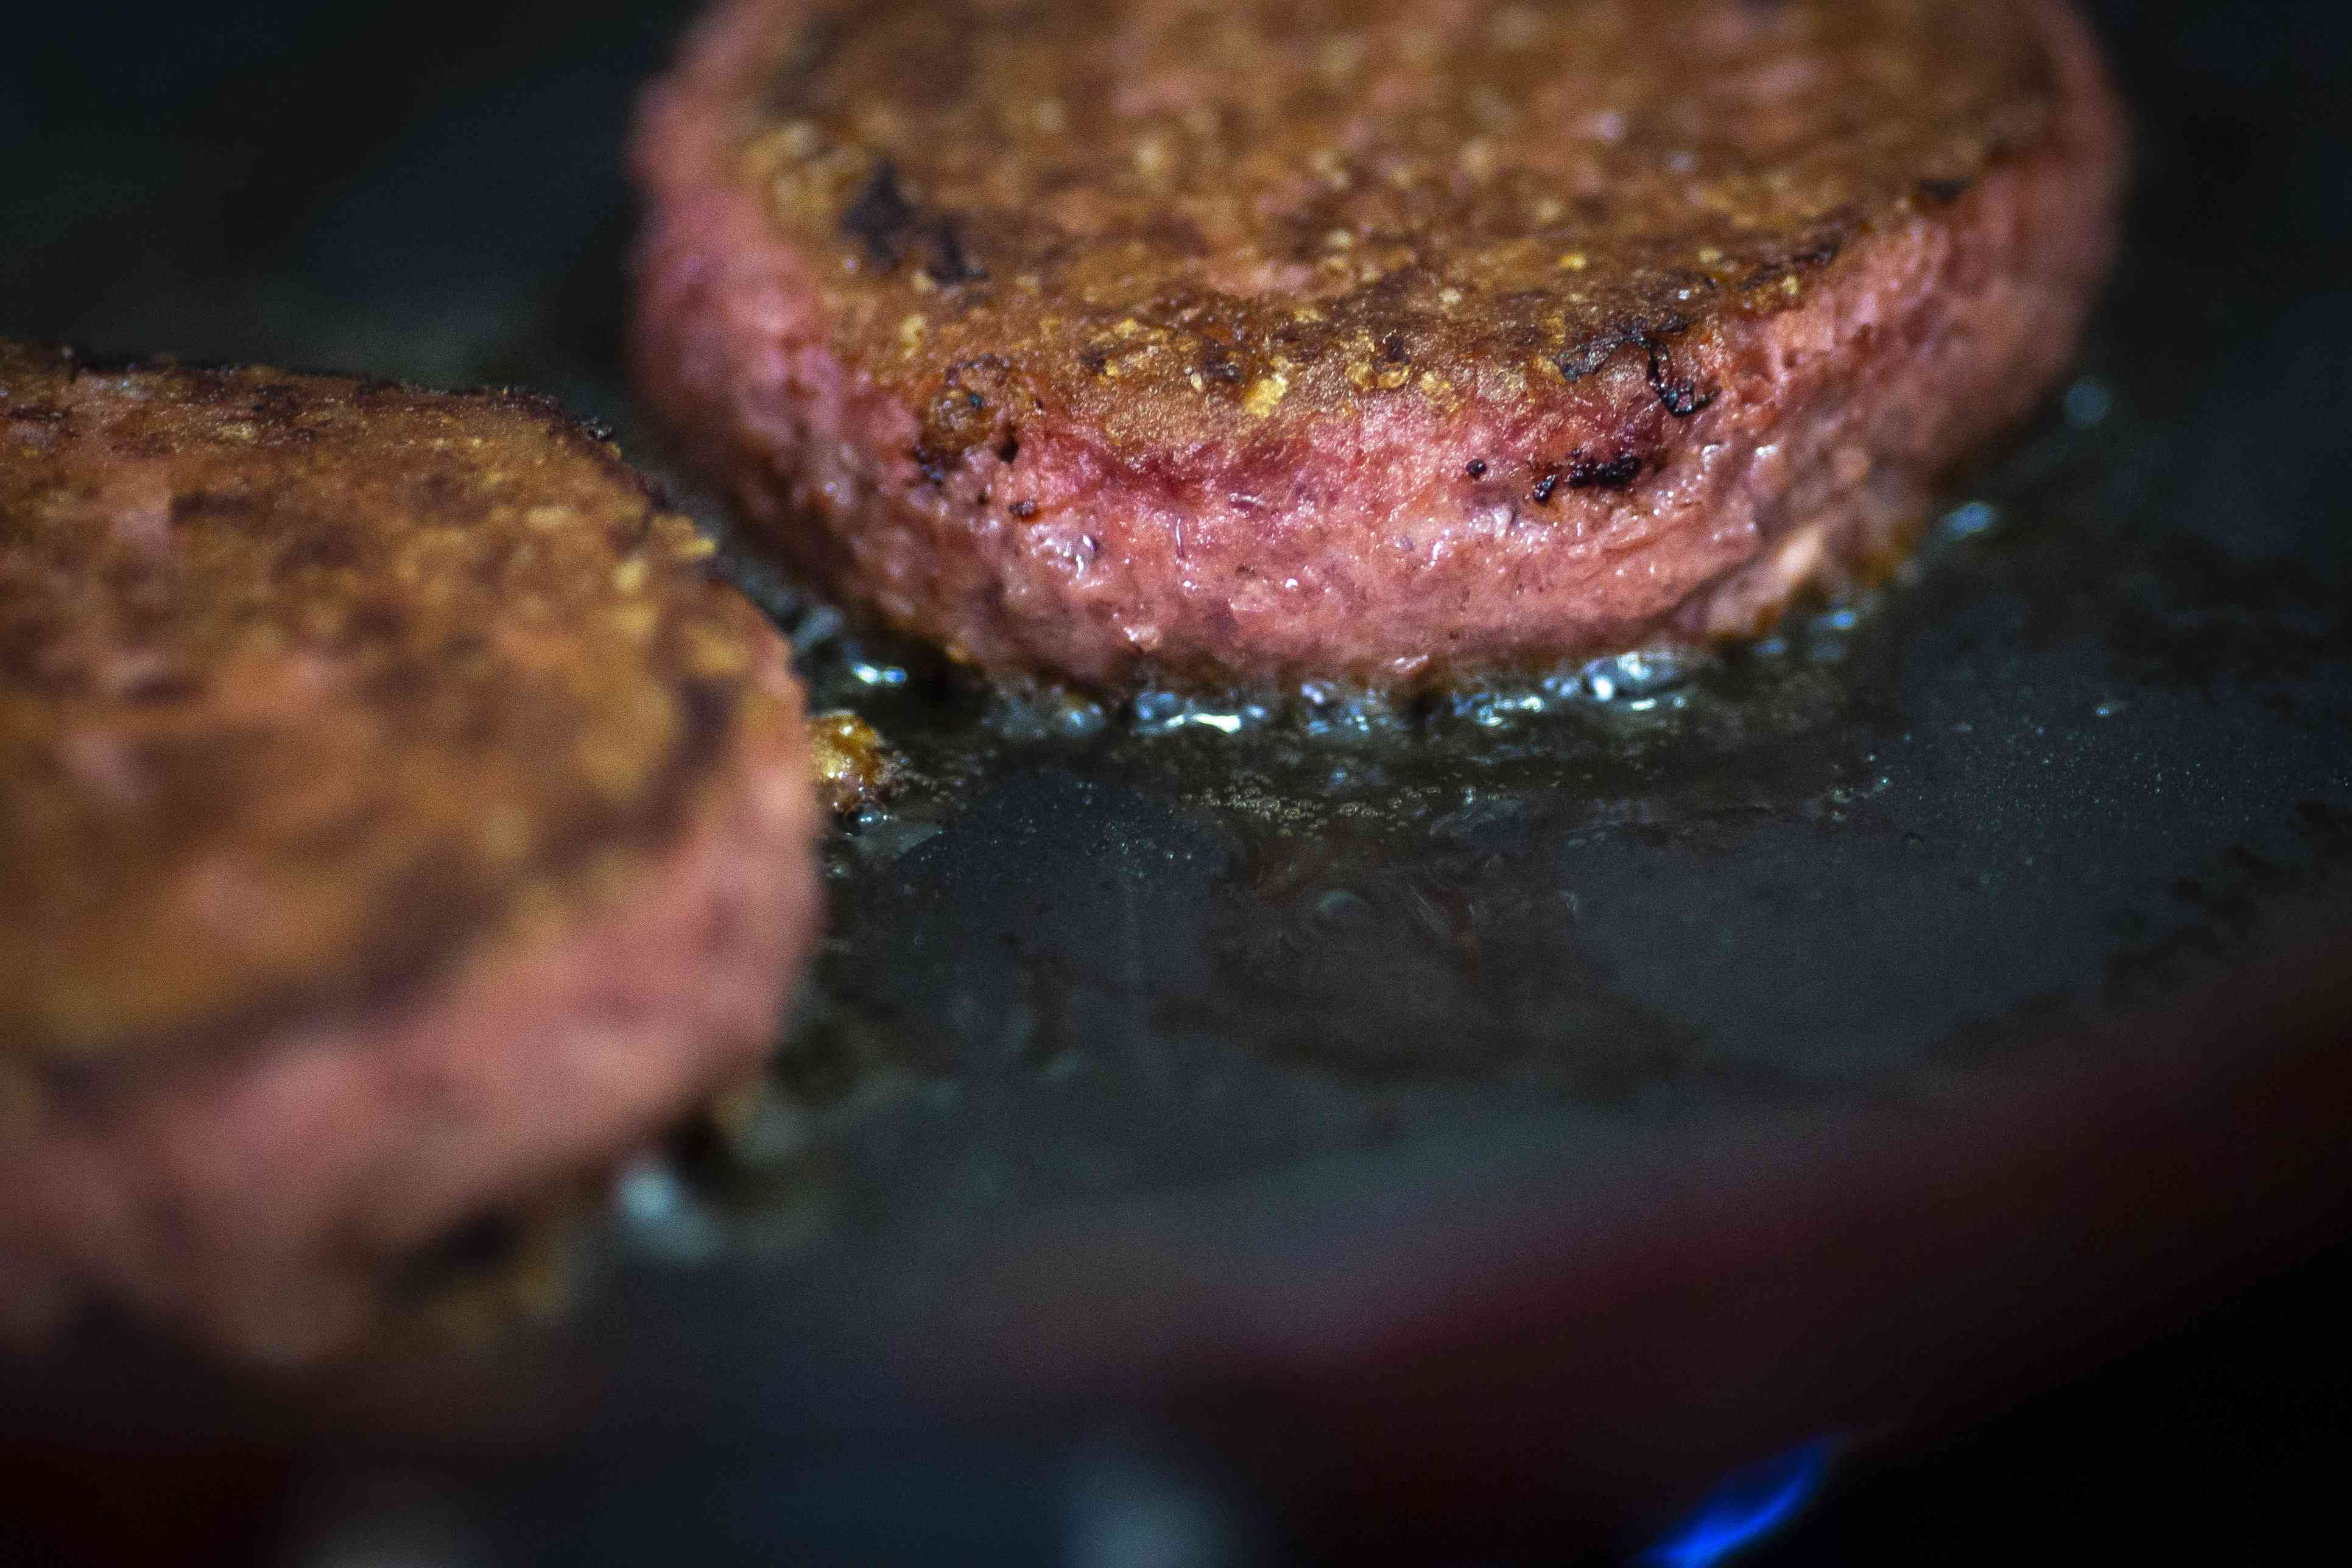 Beyond Meat burgers cooking